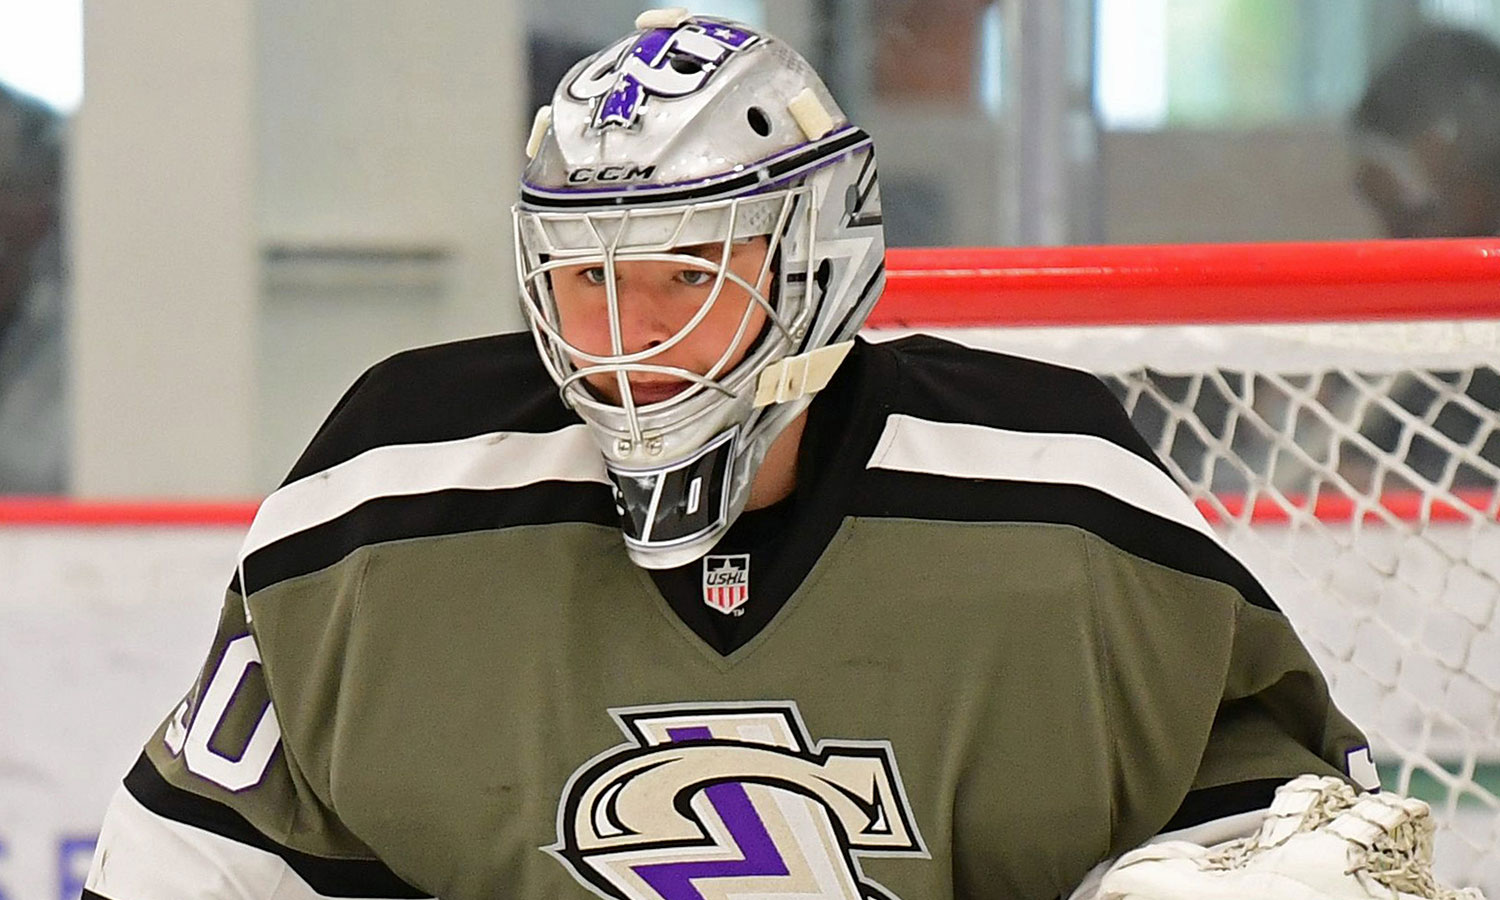 USHL: Filip Larsson Named Goaltender Of The Year